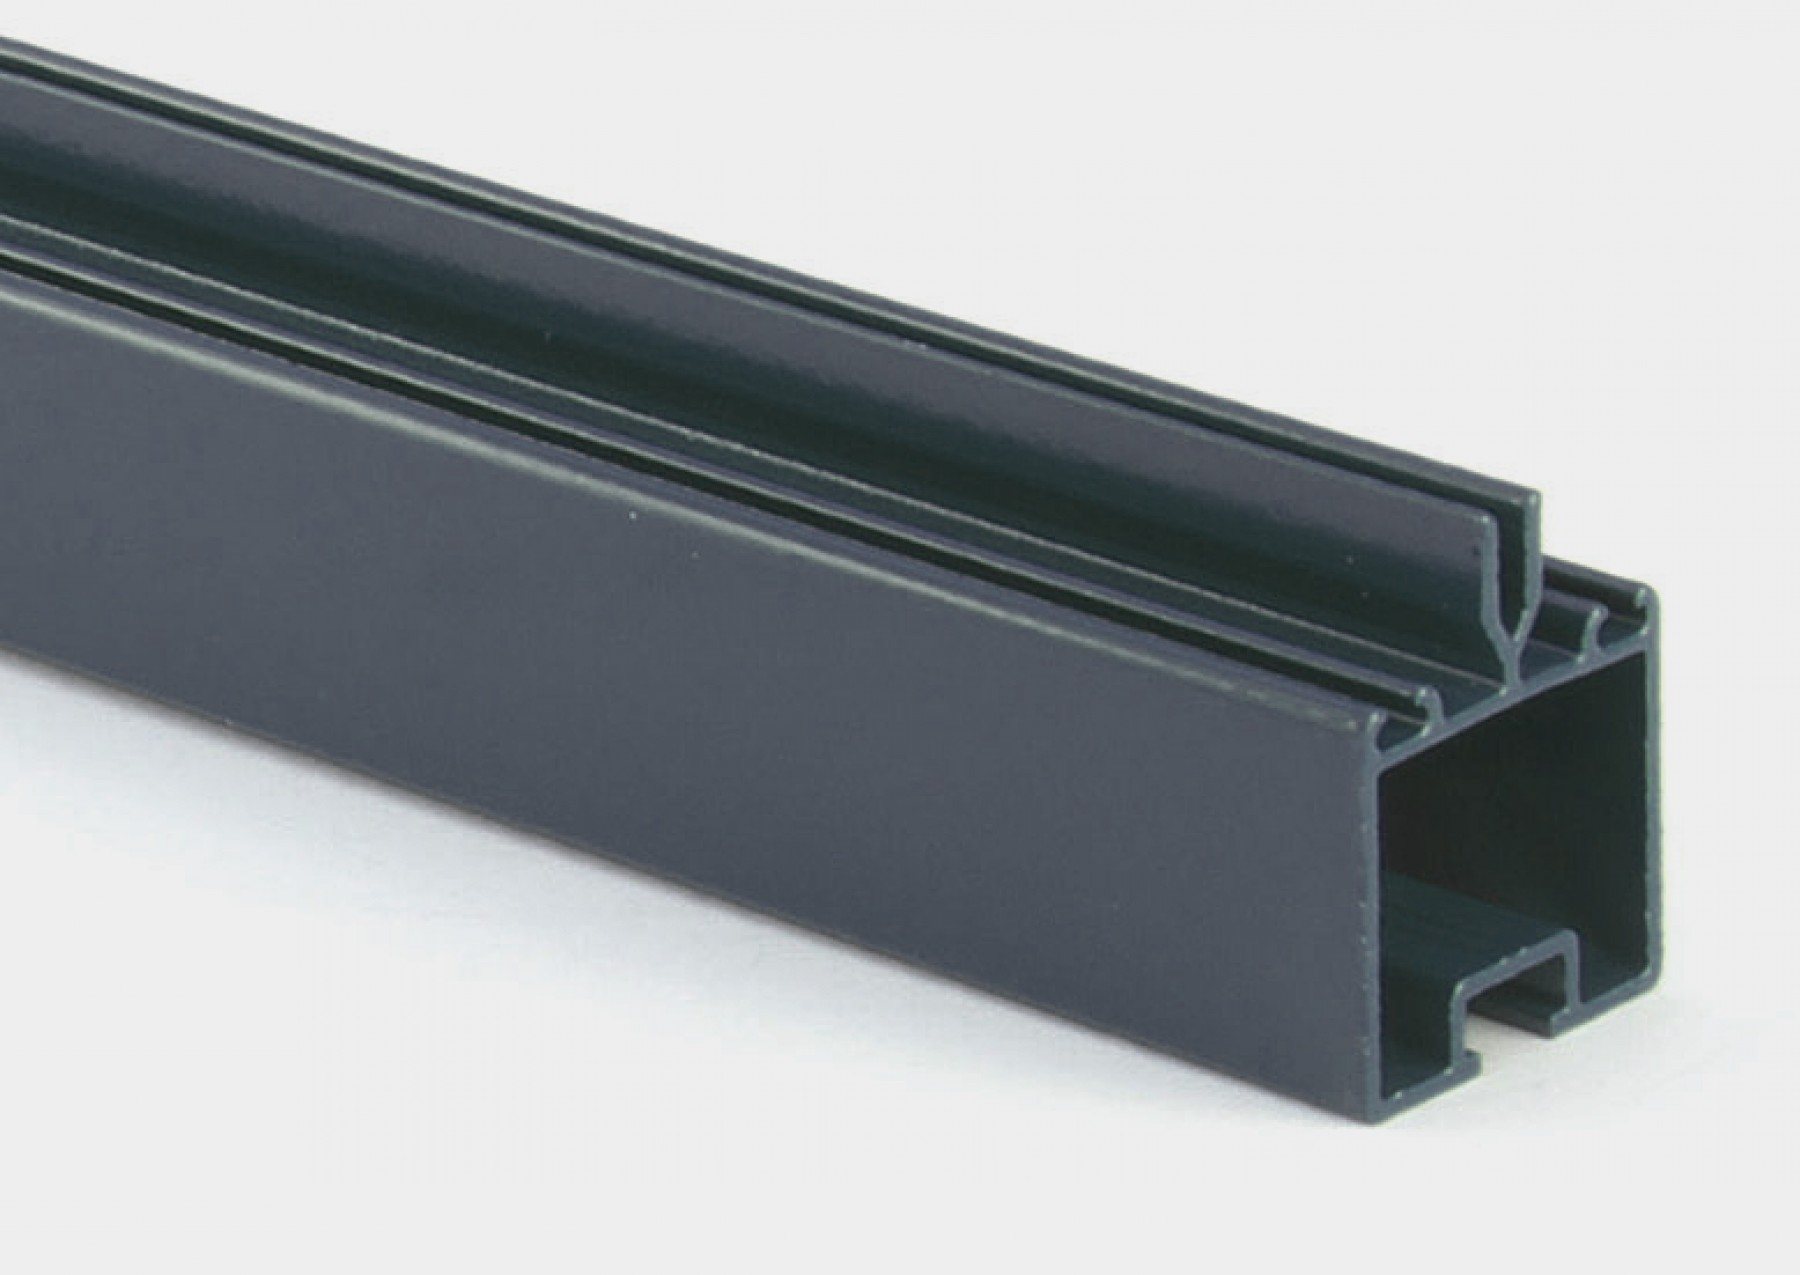 Robinsons glazing bar, in Anthracite